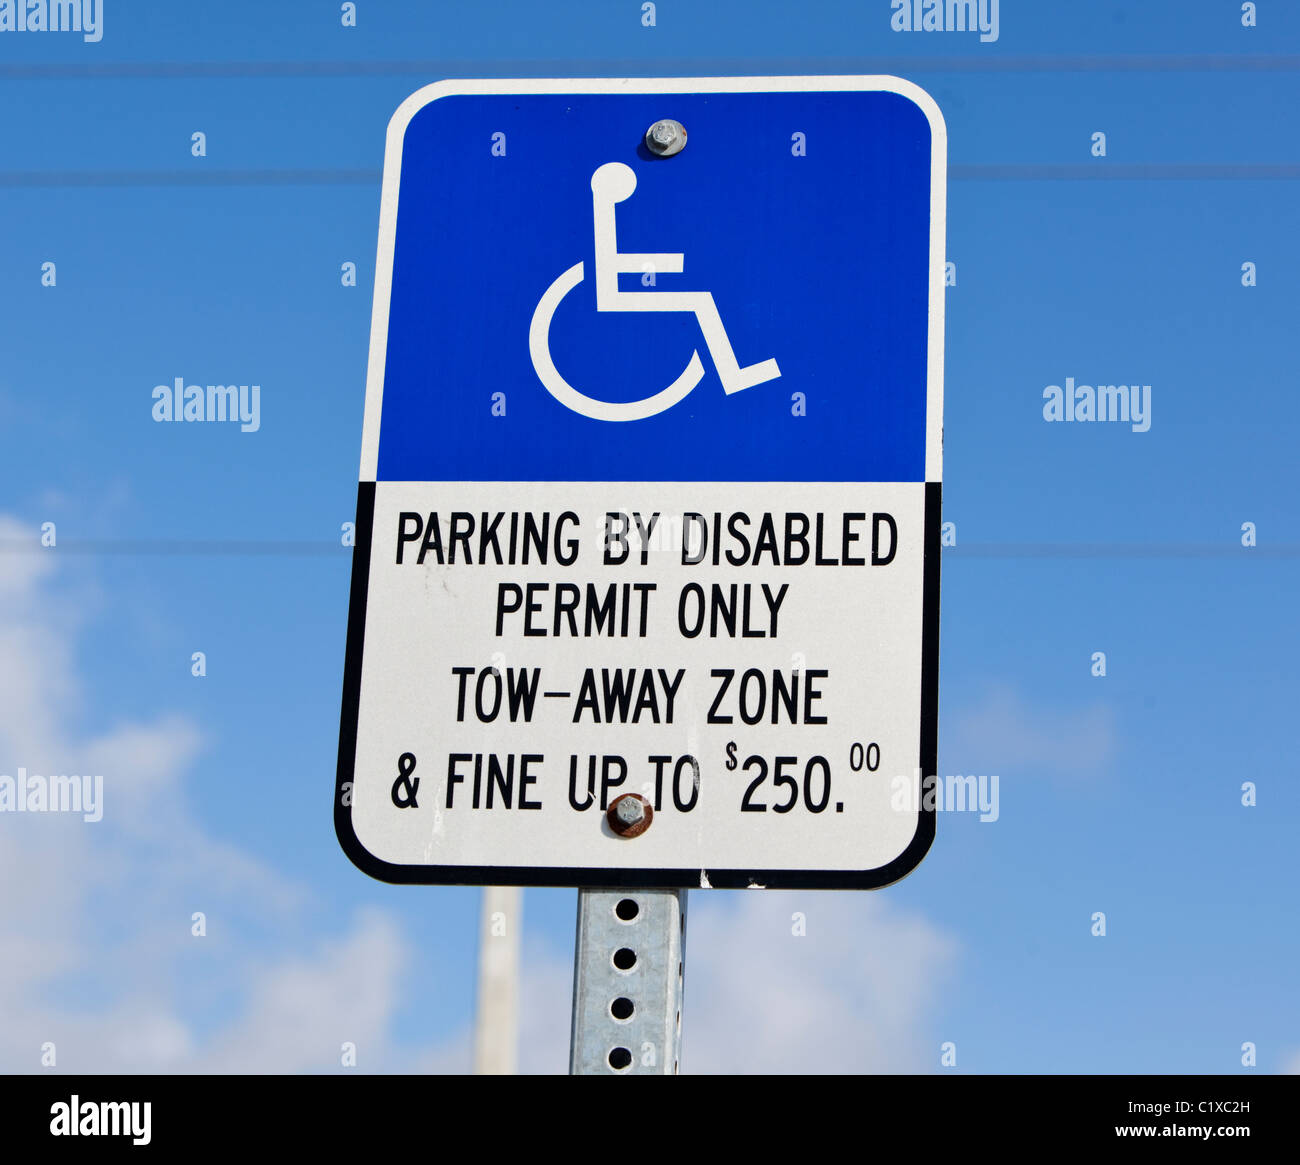 Parking disabled permit only sign concept, USA - Stock Image